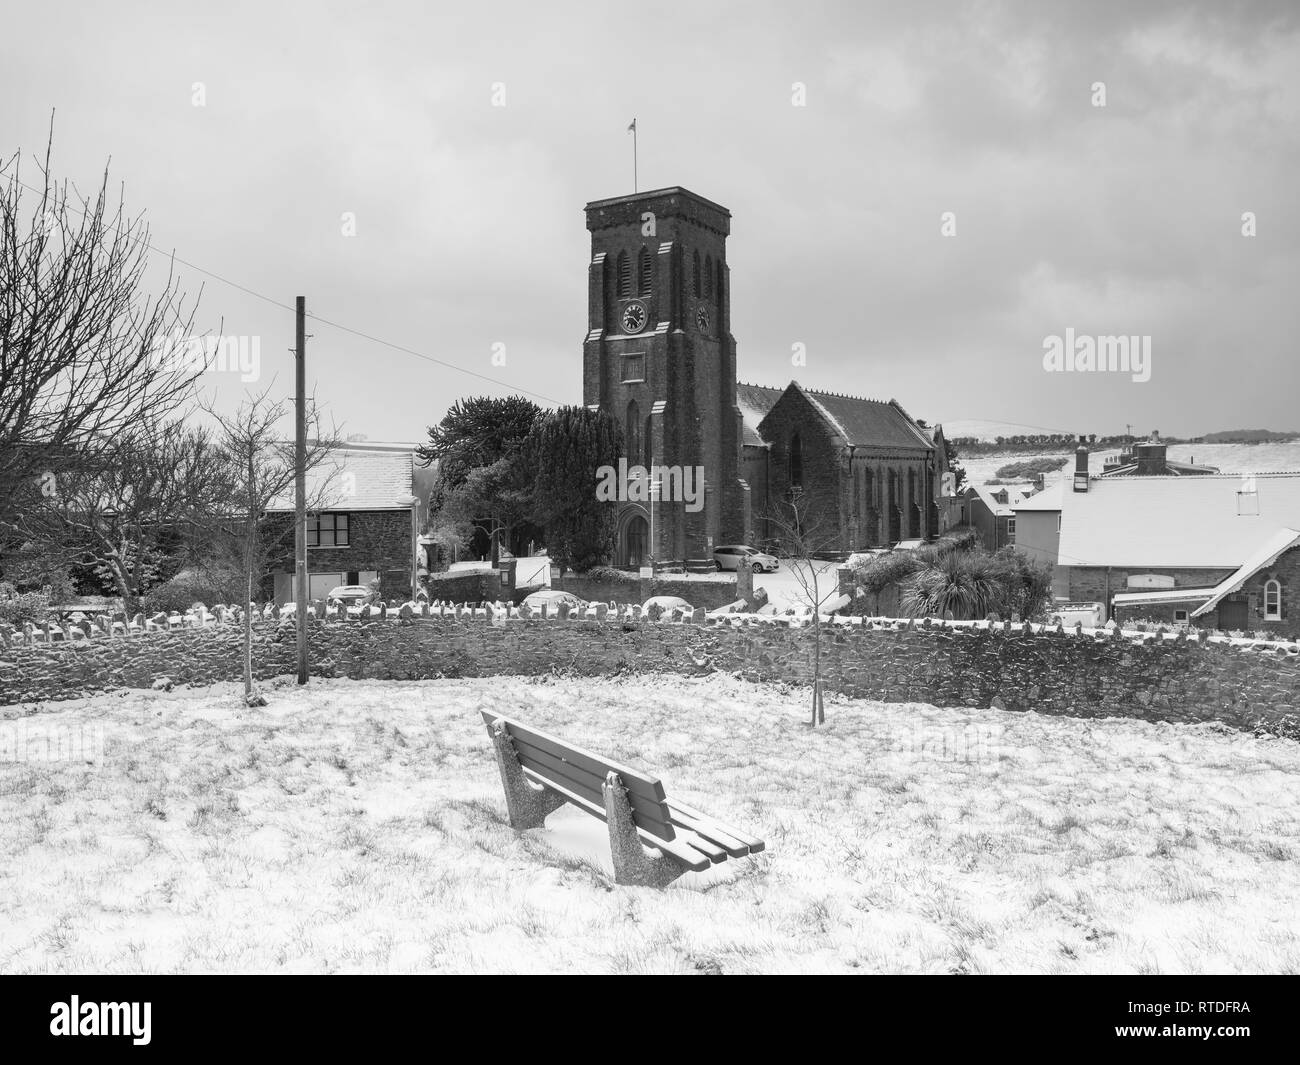 A snowy scene of Salcombe's Trinity Church after the beast from the east struck south devon. Salcombe was then hit by Storm Emma. - Stock Image